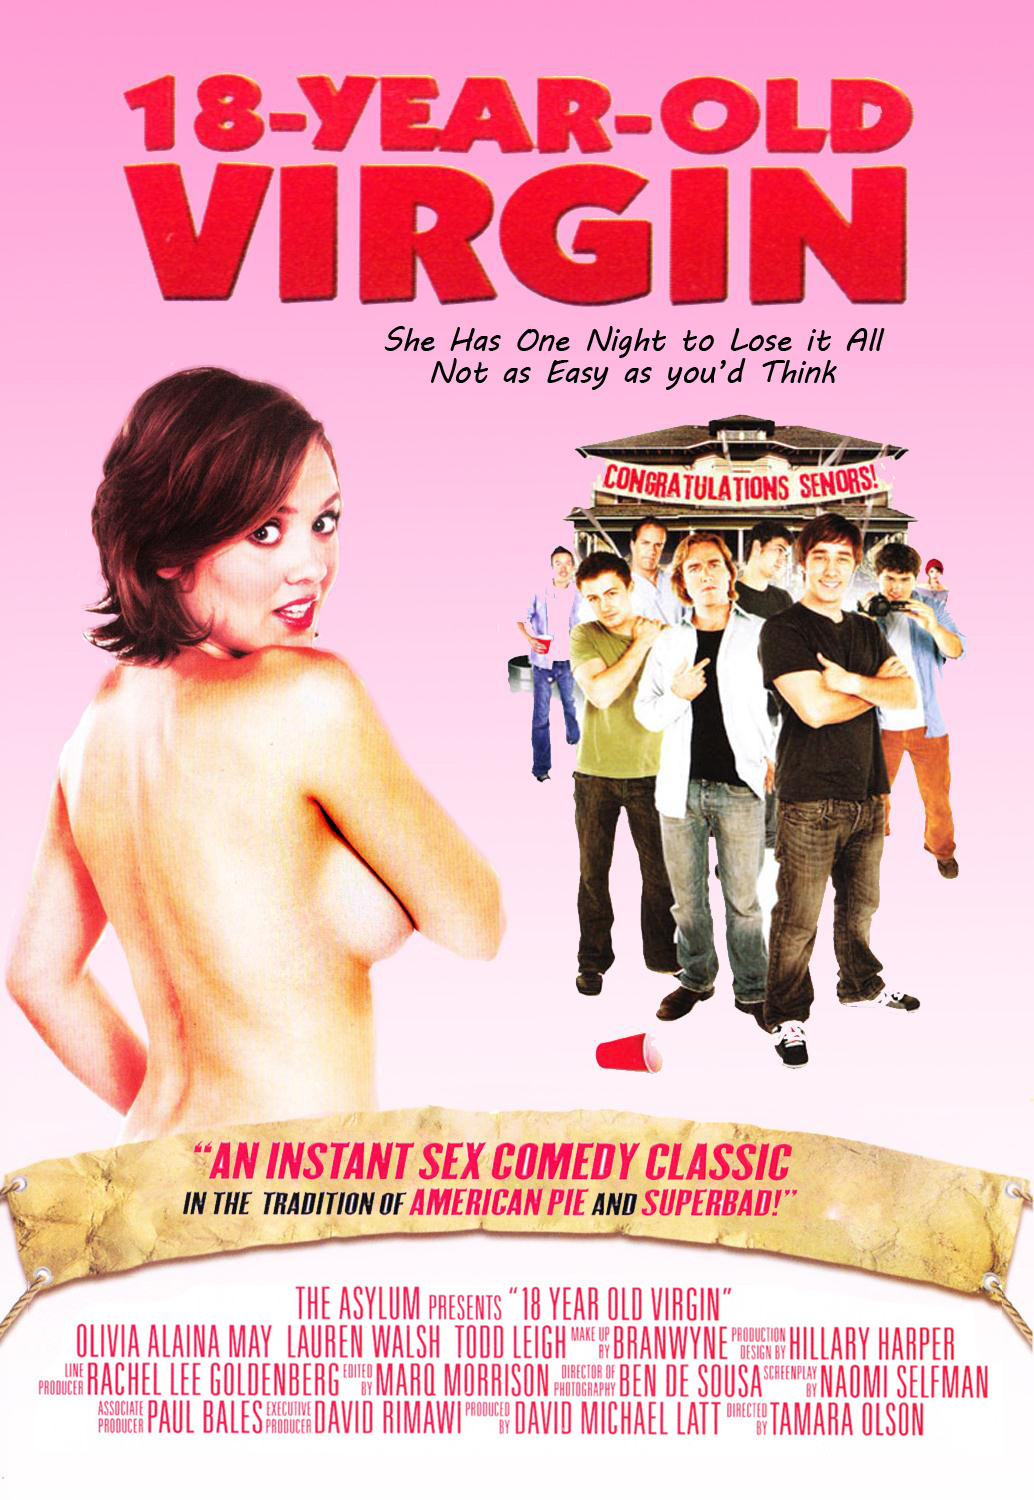 18 Years Old Virgin